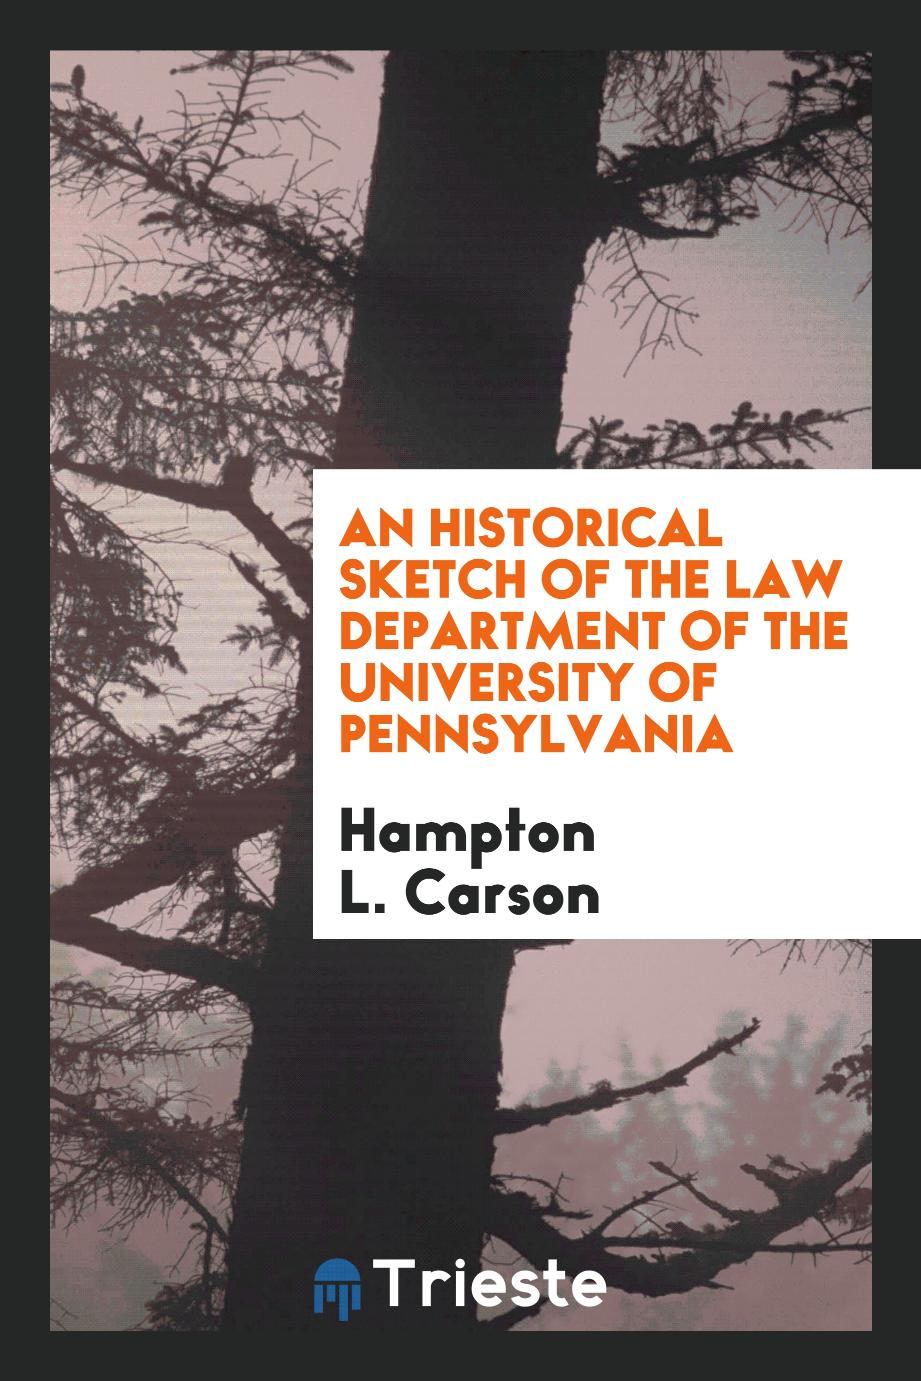 Hampton L. Carson - An Historical Sketch of the Law Department of the University of Pennsylvania